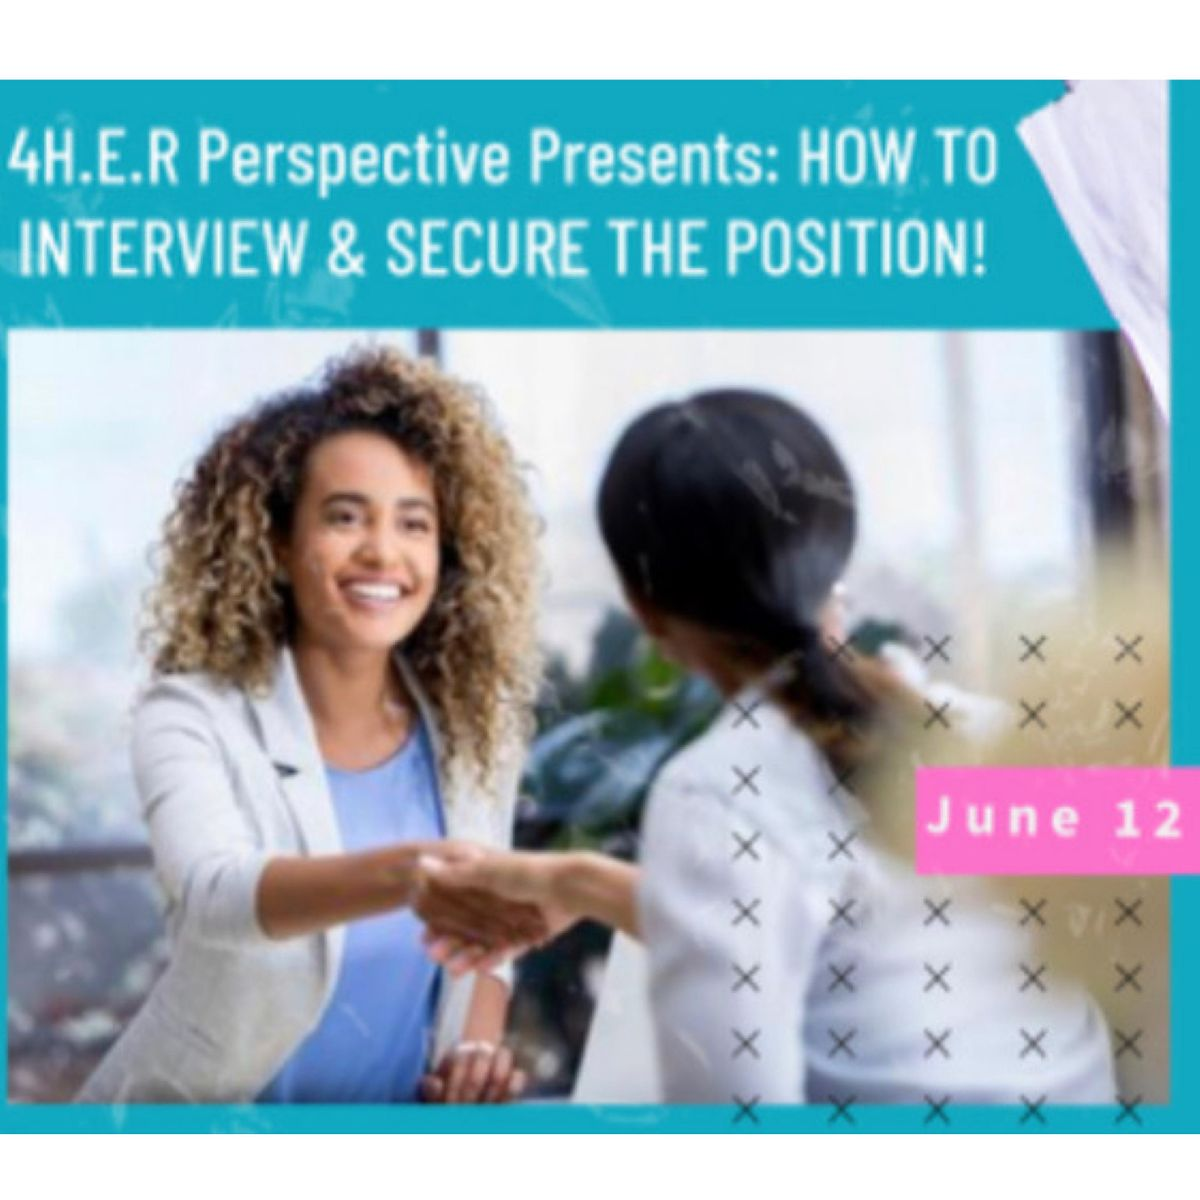 \u201cHow To Interview & Secure The Position\u201d